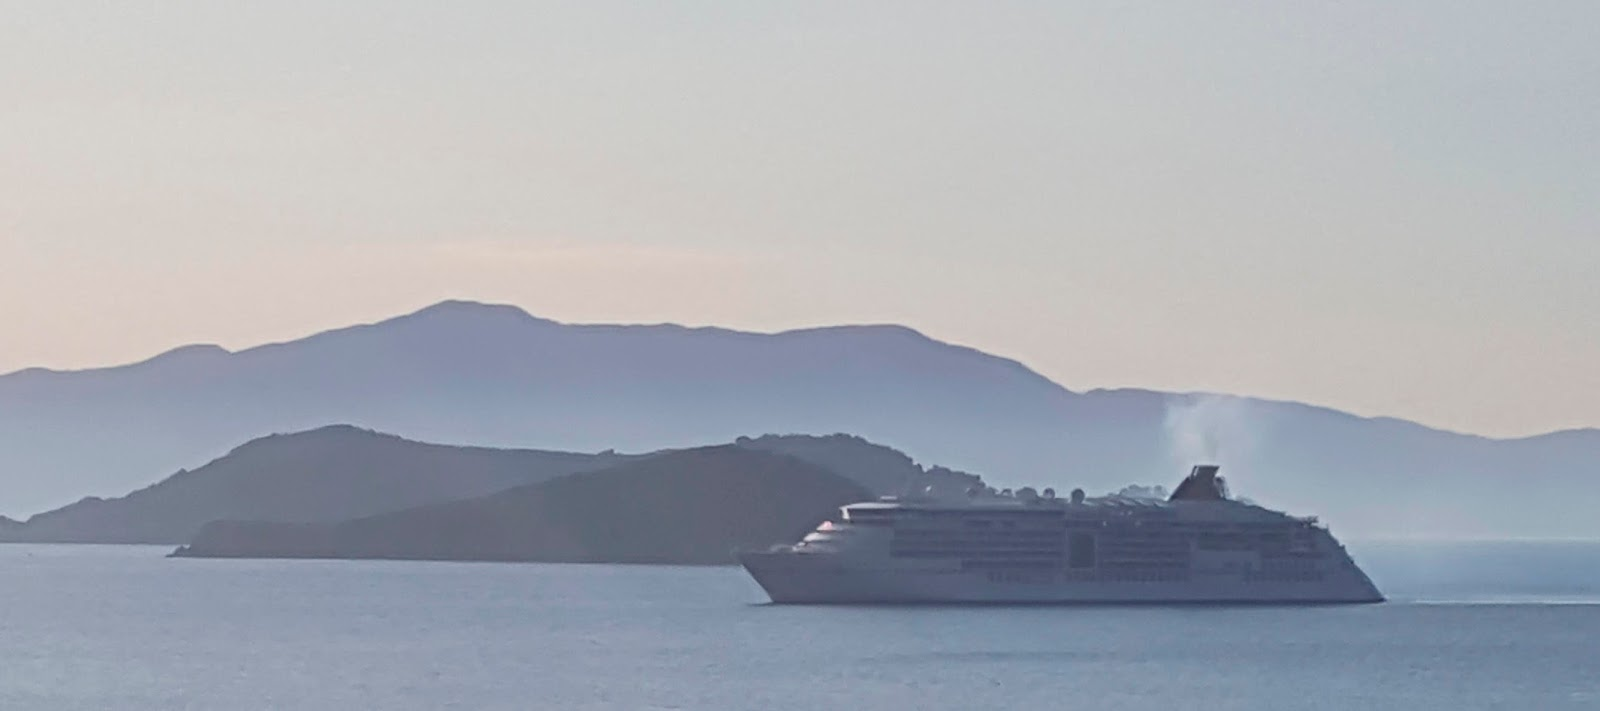 In front of an island, Europa 2 cruise liner in the bay of Skiathos, Greece